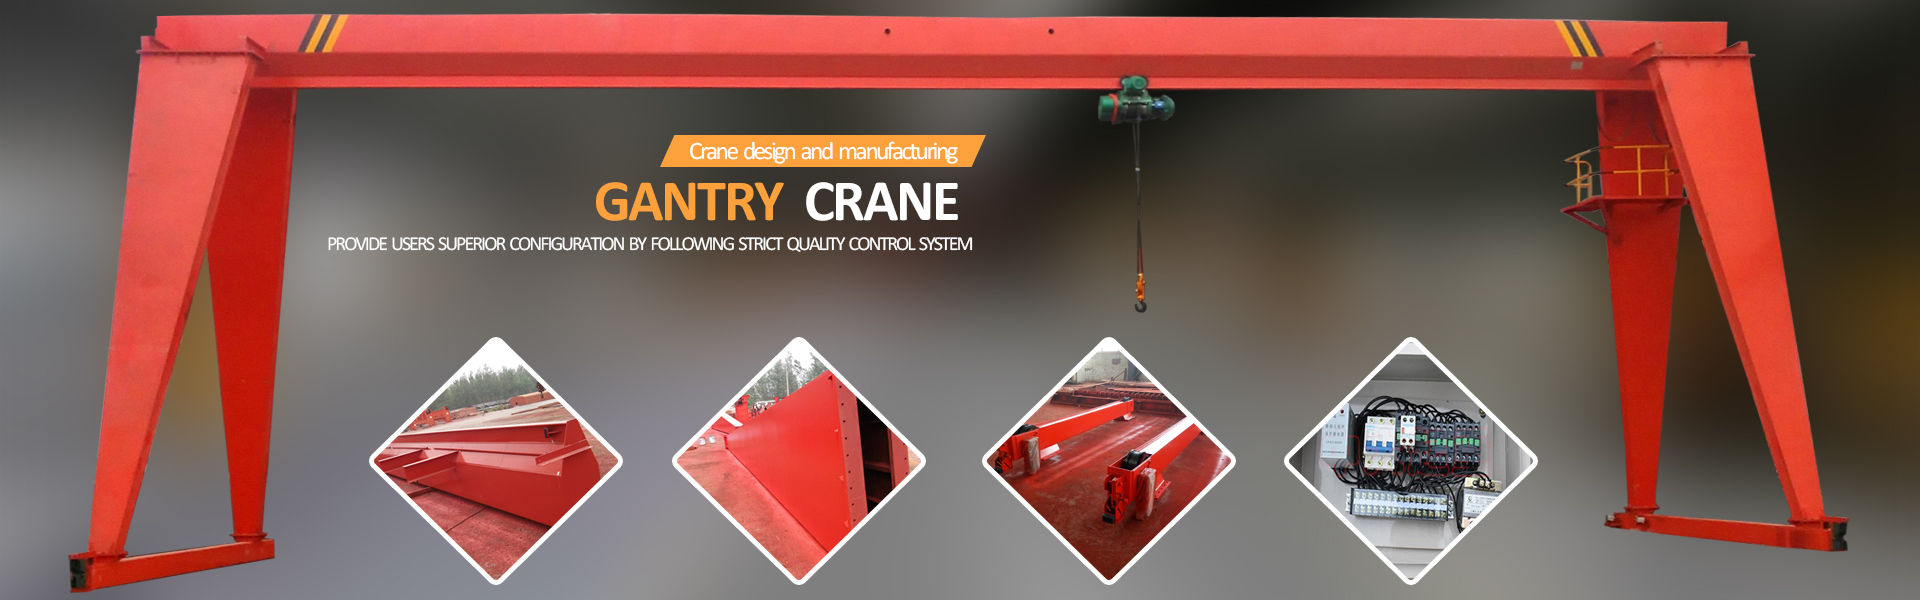 crane design and manufacturing